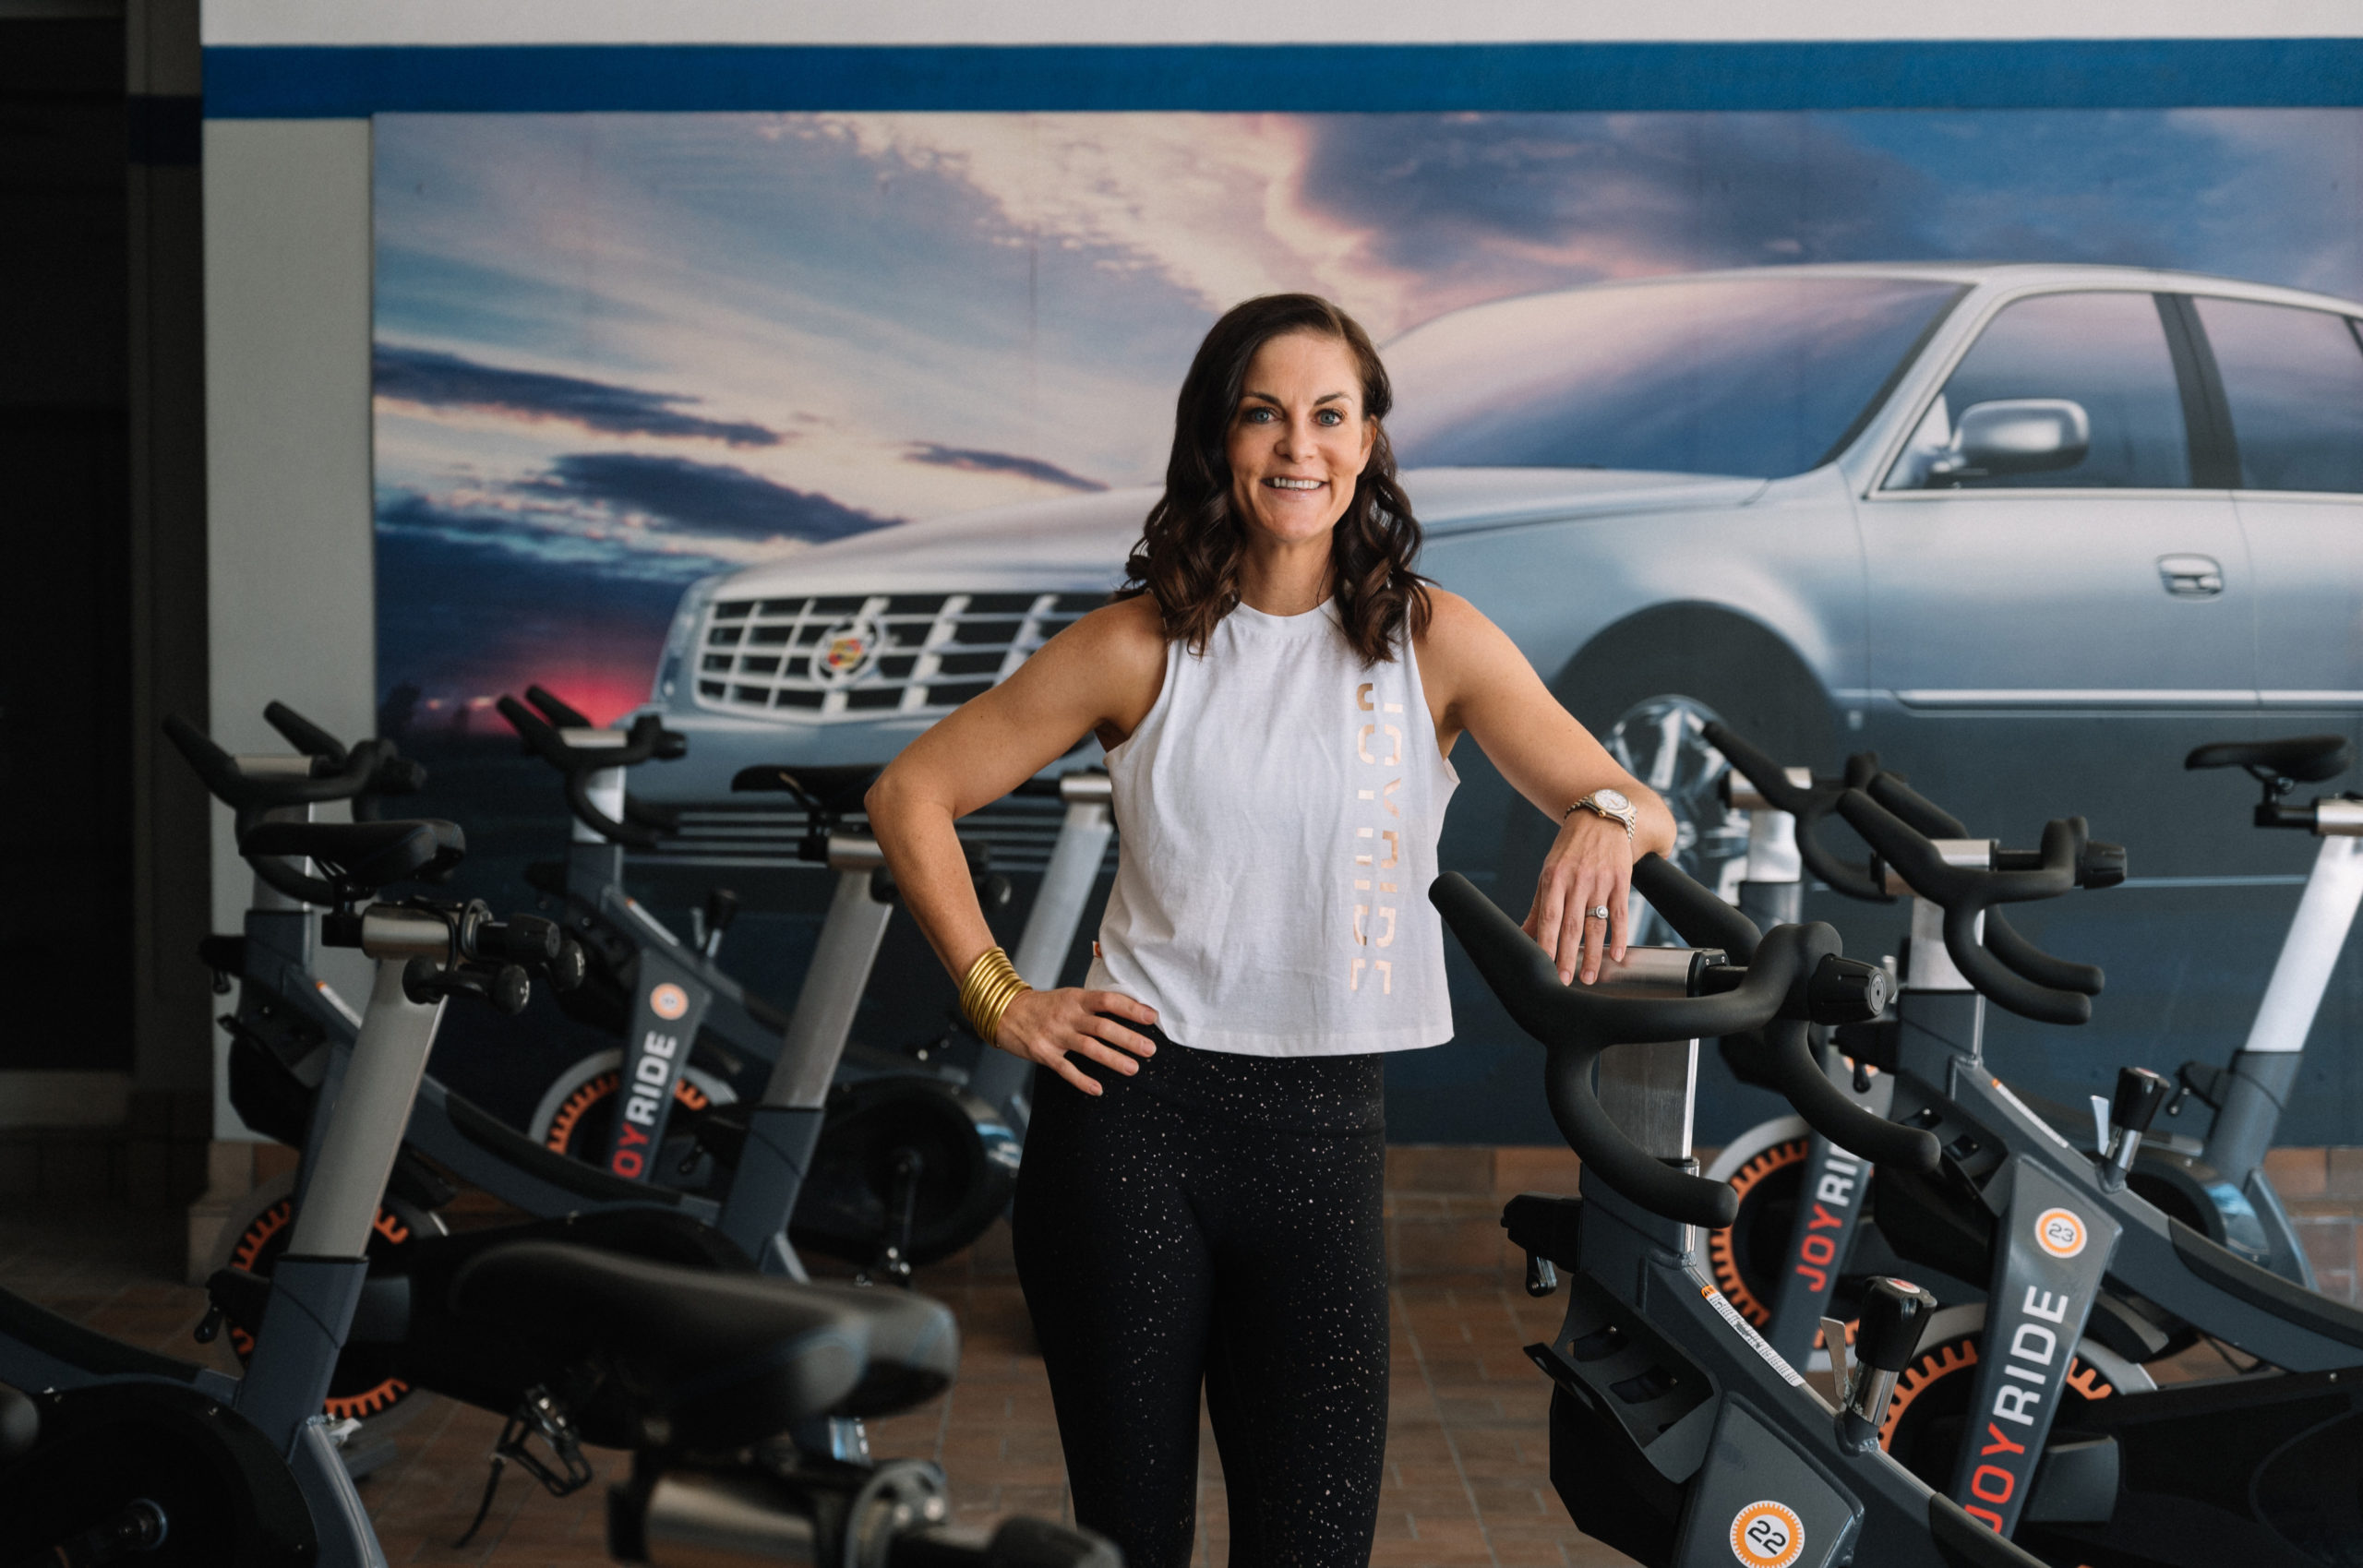 Kelly Middleton san antonio woman feature story joyride cycling and fitness